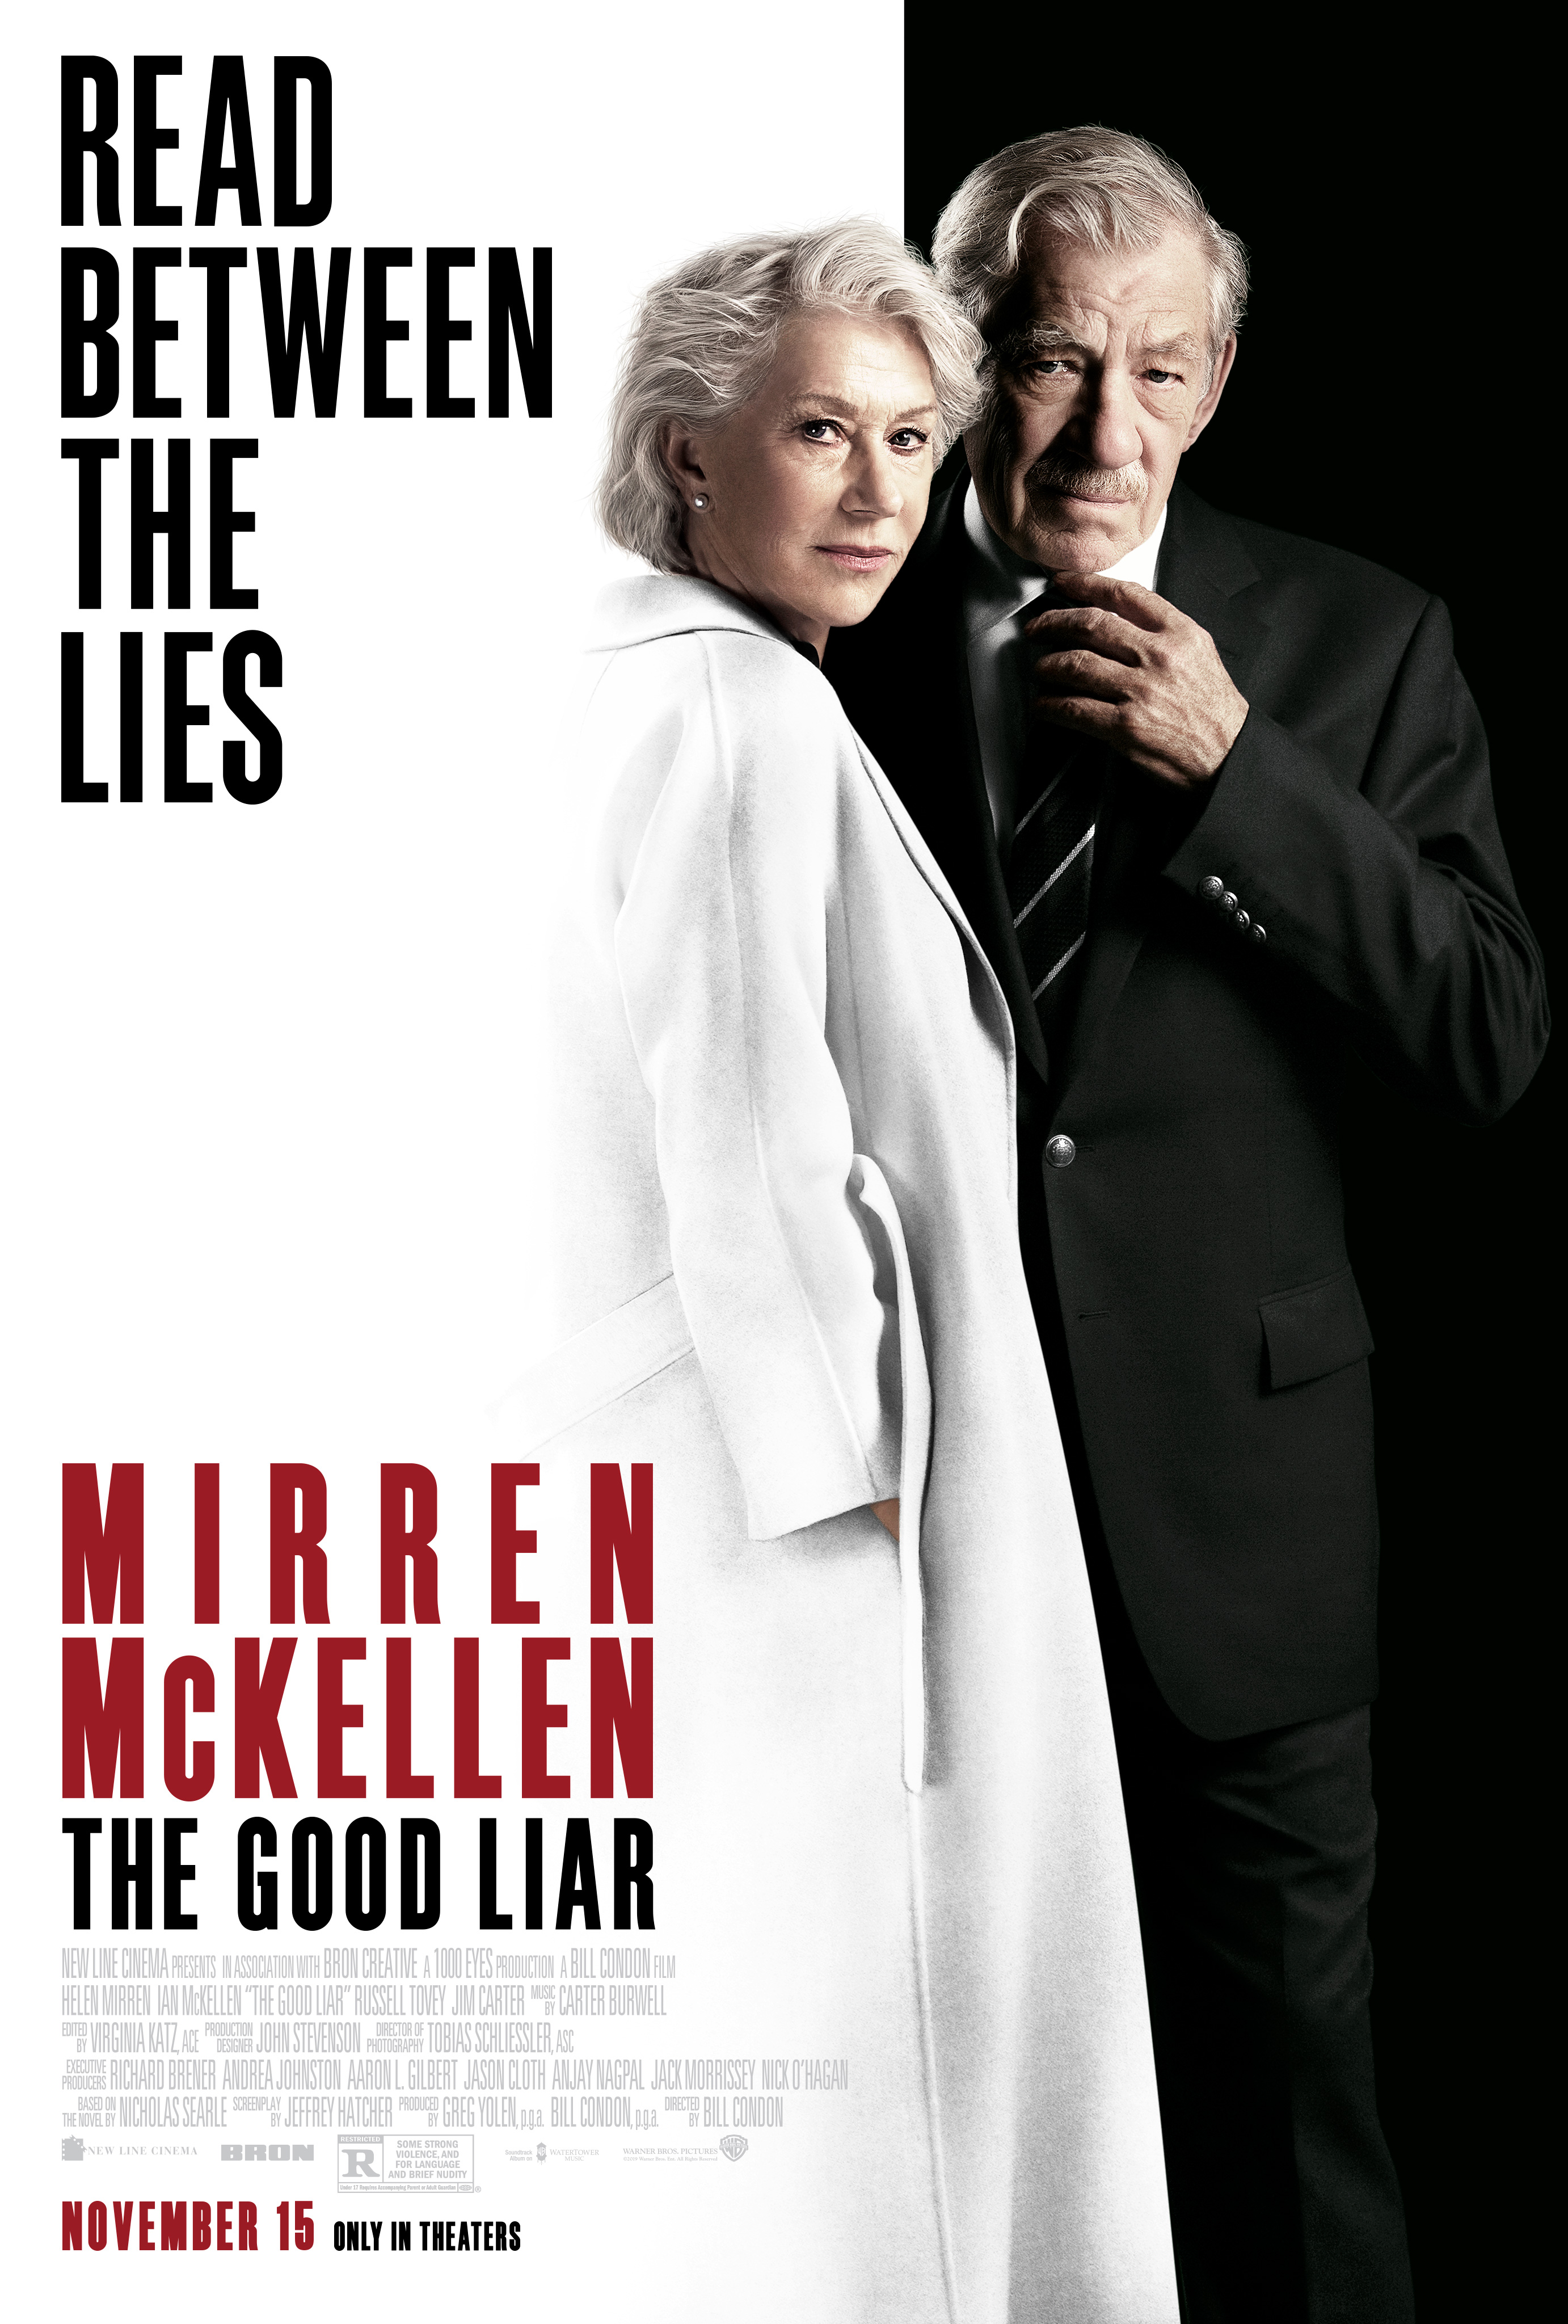 Movies @ Middletown: The Good Liar